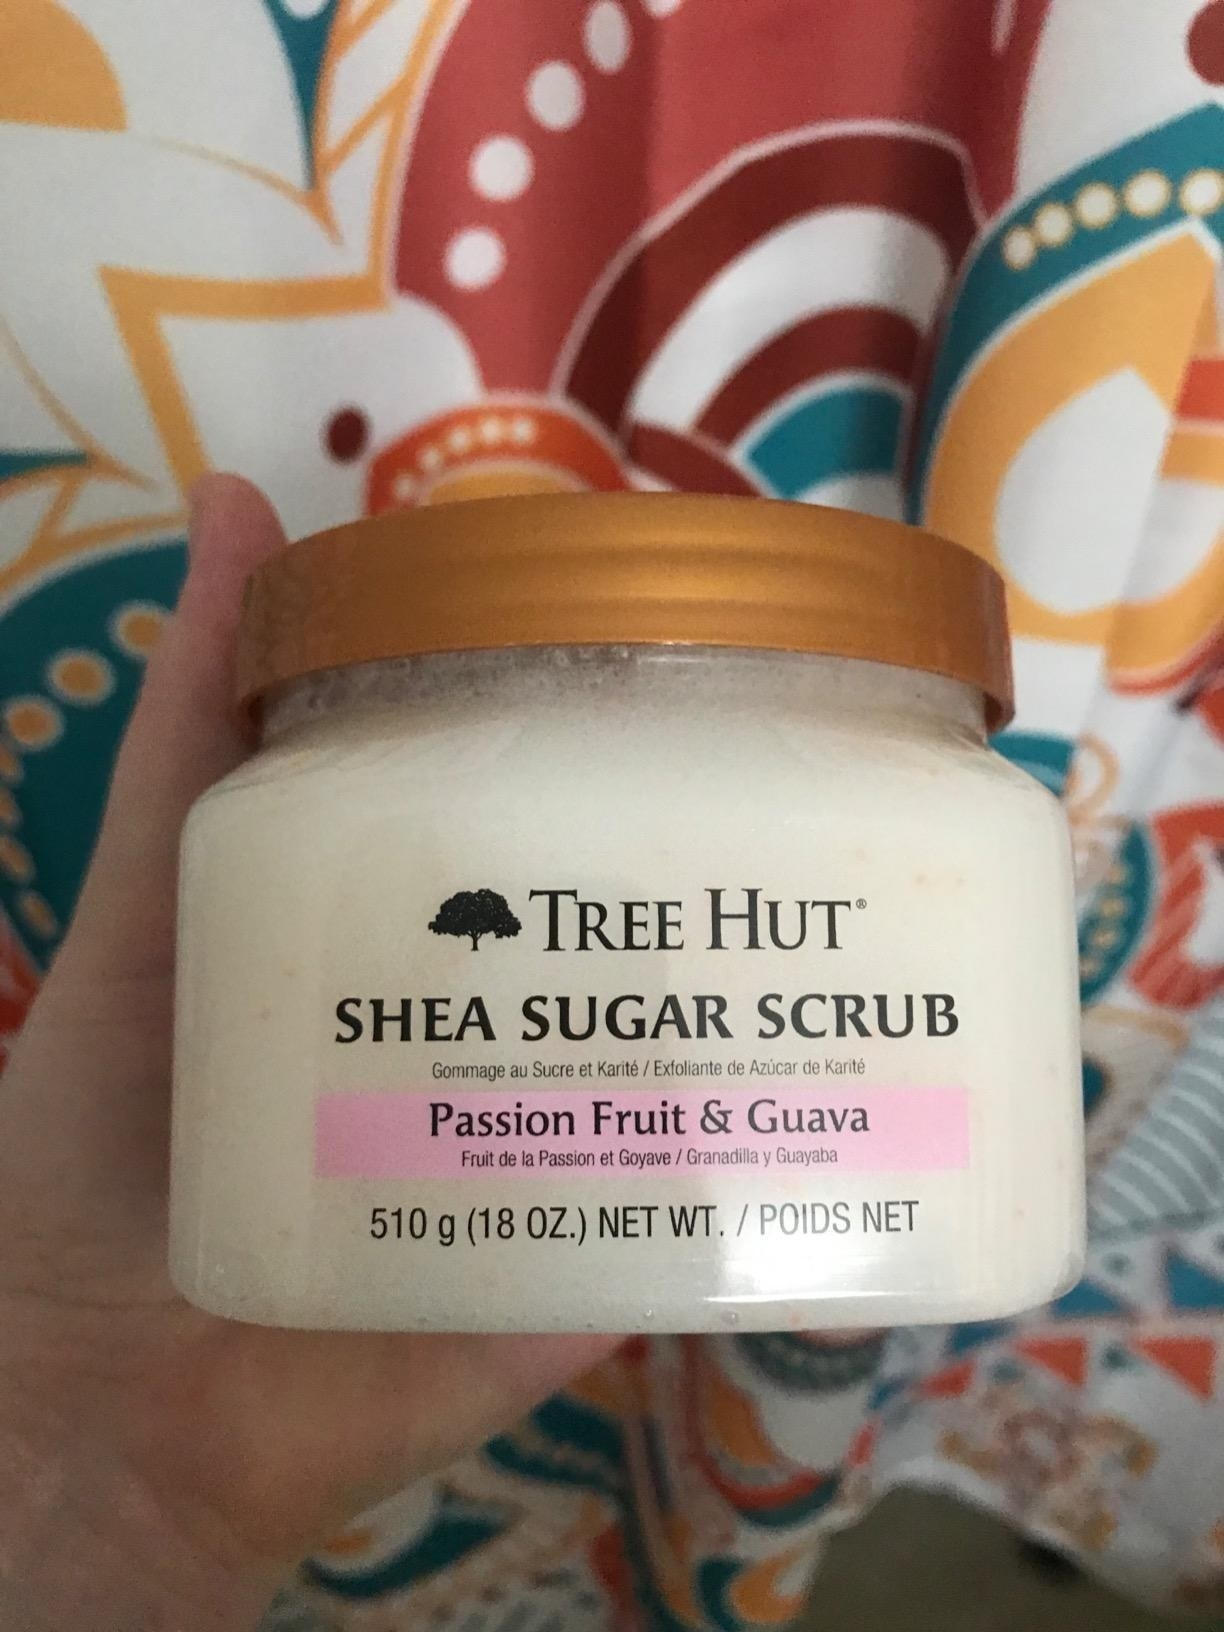 A close-up of the jar of sugar scrub